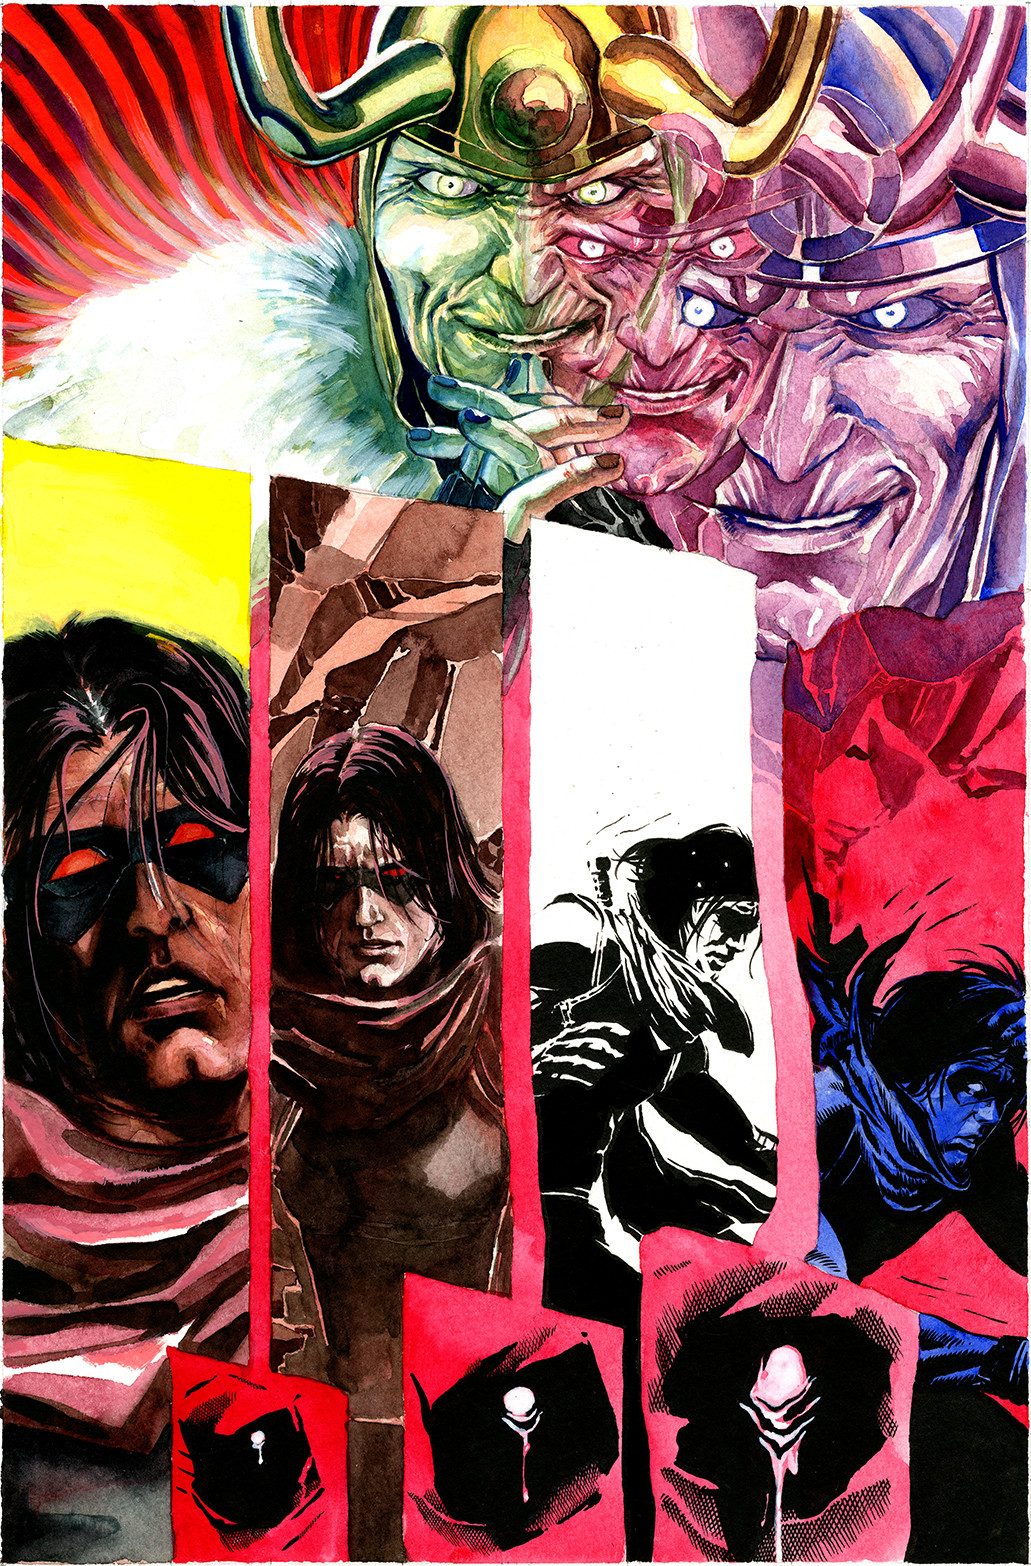 ArtStation - WInter Soldier Series - issue 2 pages - Marvel